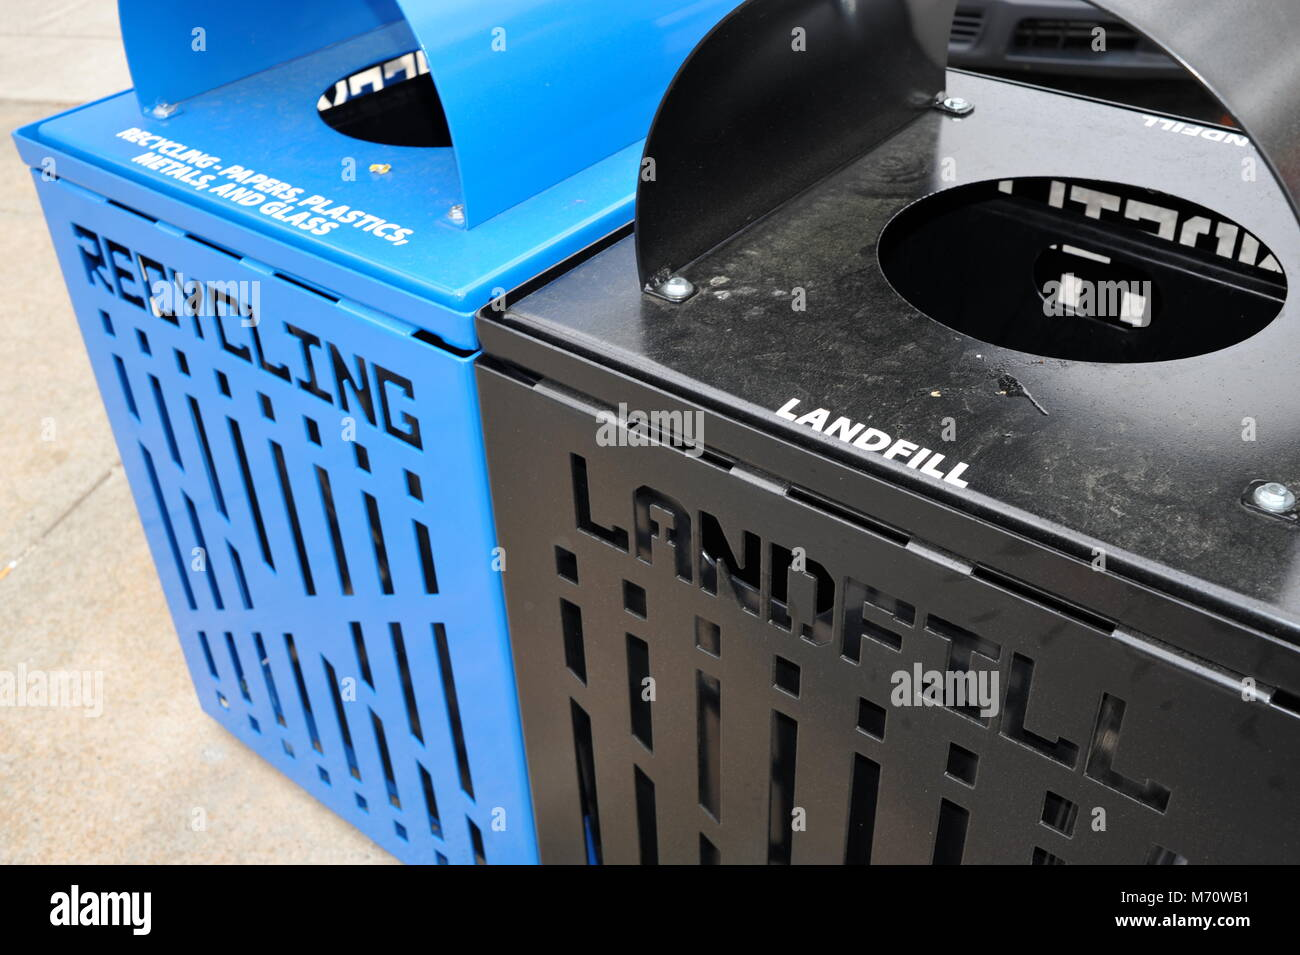 Recycling bin container next to trash bin labeled 'Landfill' in USA. - Stock Image